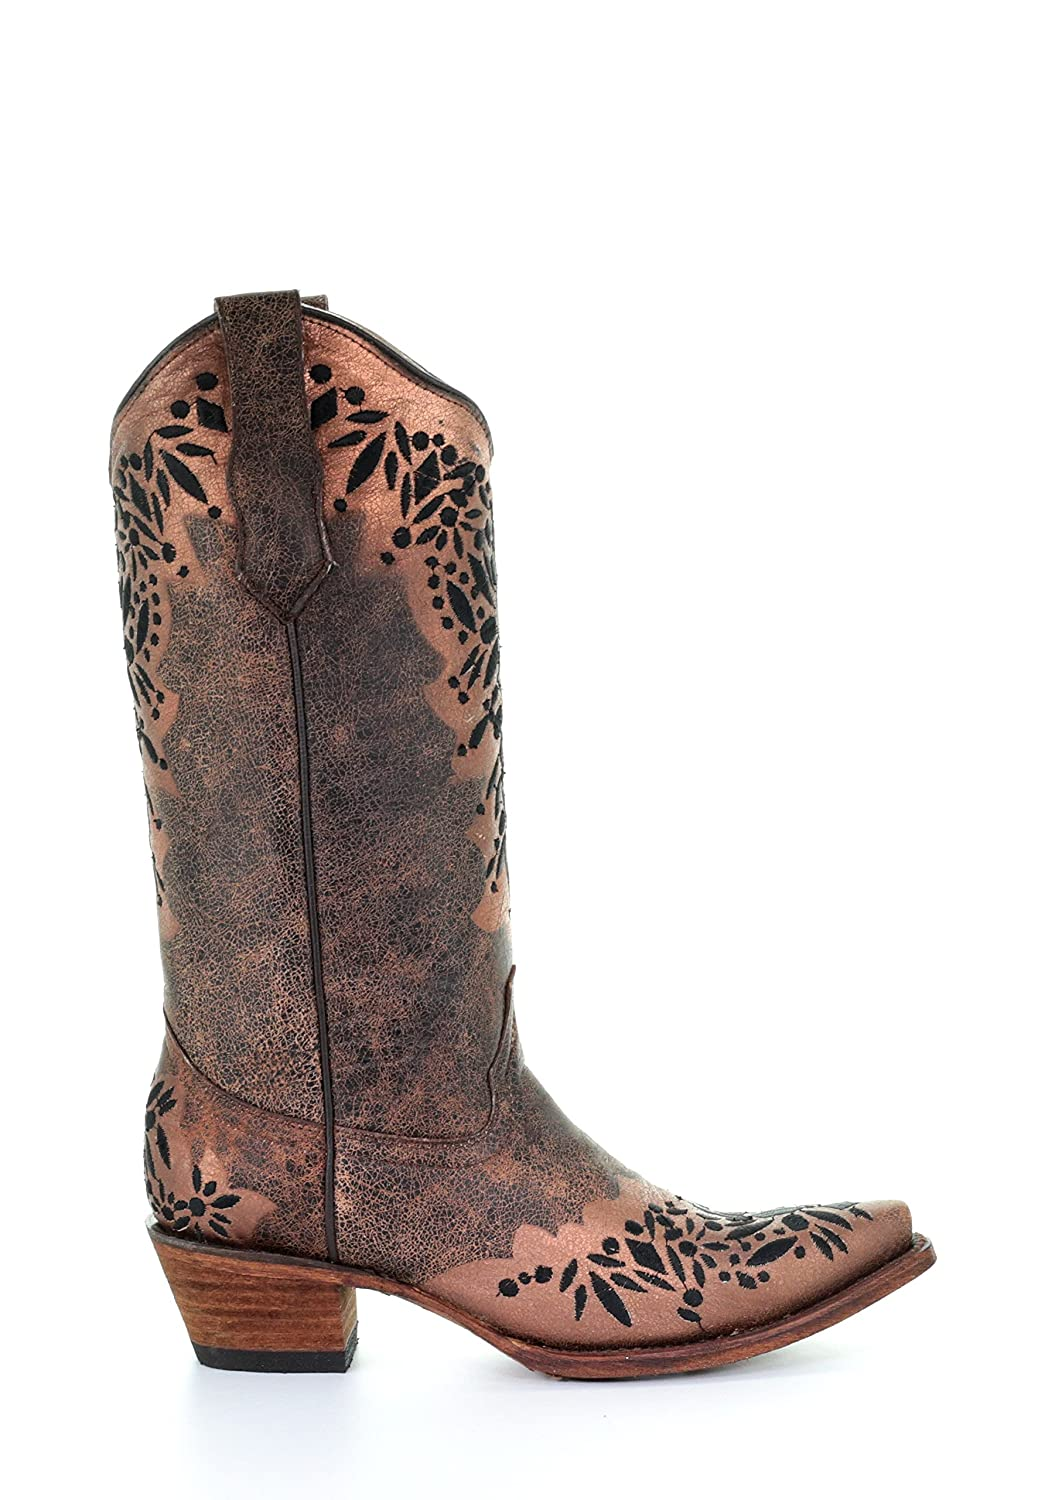 Corral Circle G Women's Black Embroidery Snip Toe Leather Cowgirl Boots - Shedron B07BJCFGW4 7.5 B(M) US|Black